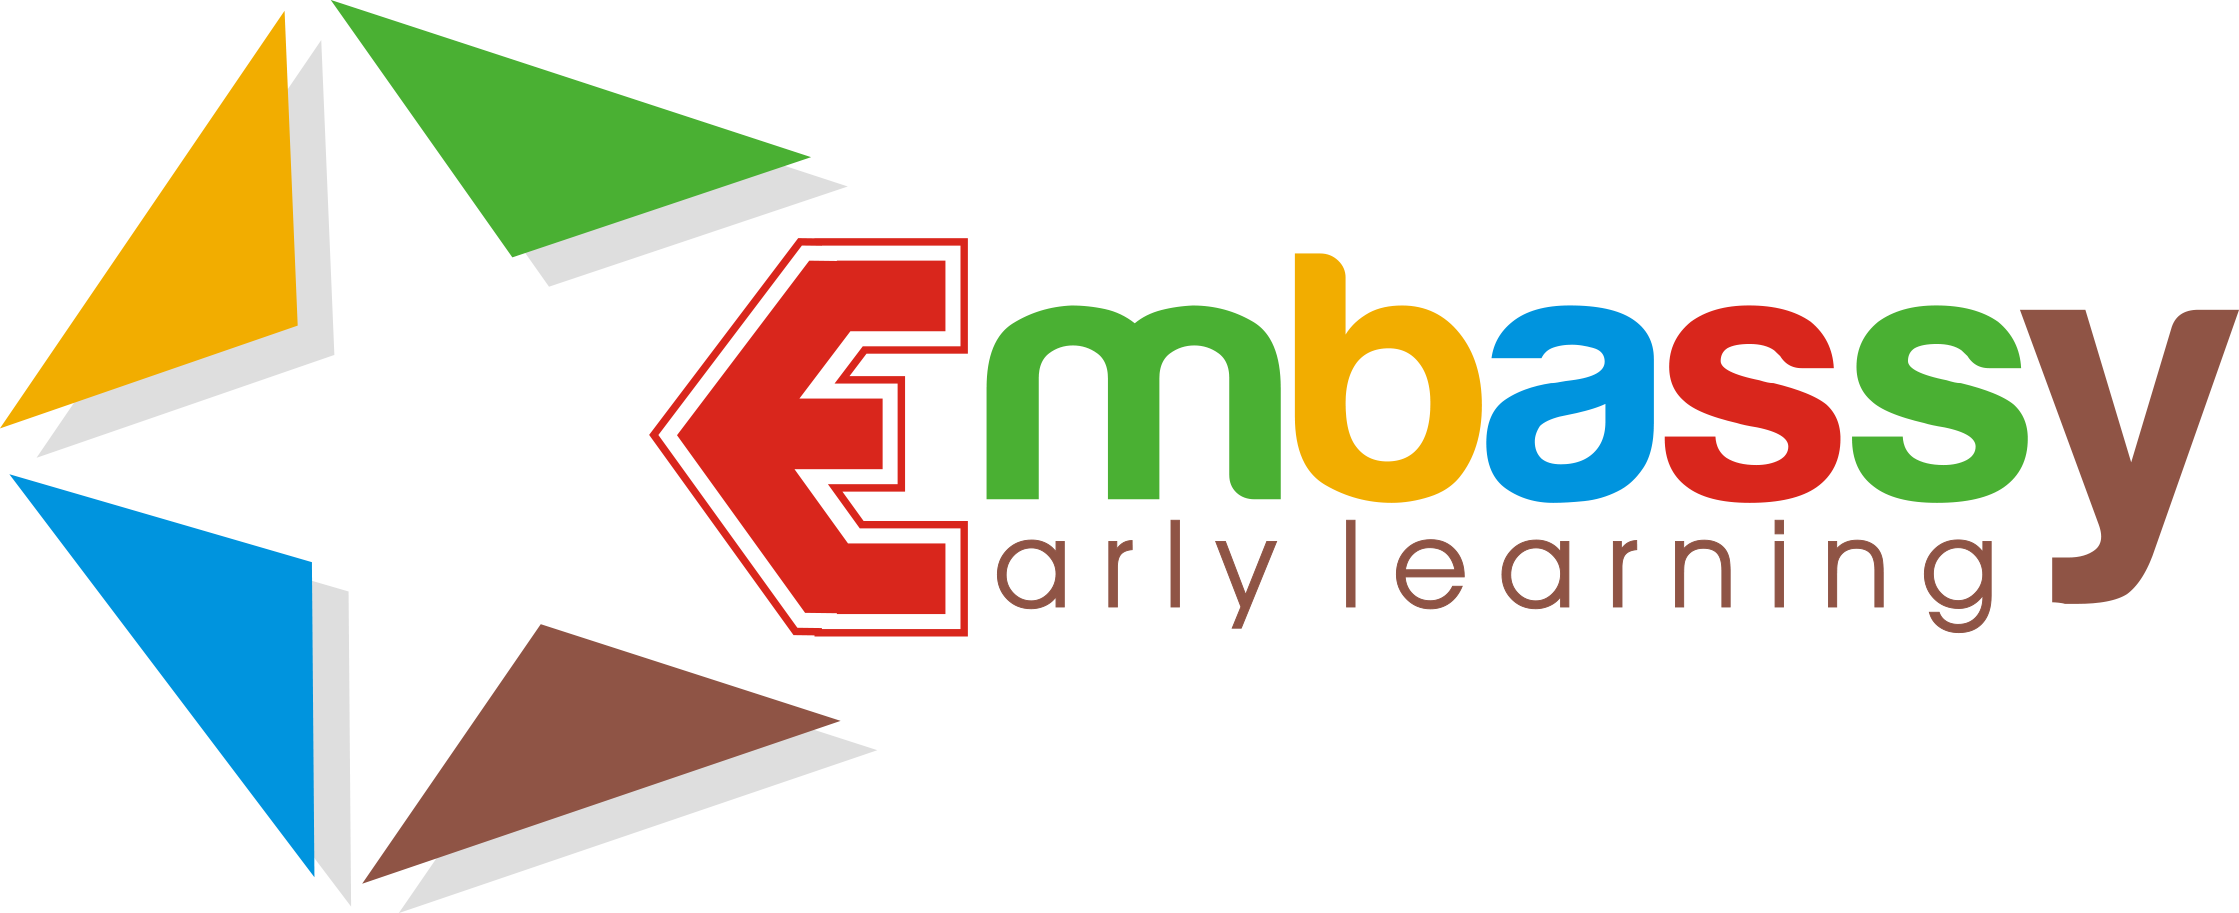 Embassy Early Learning School